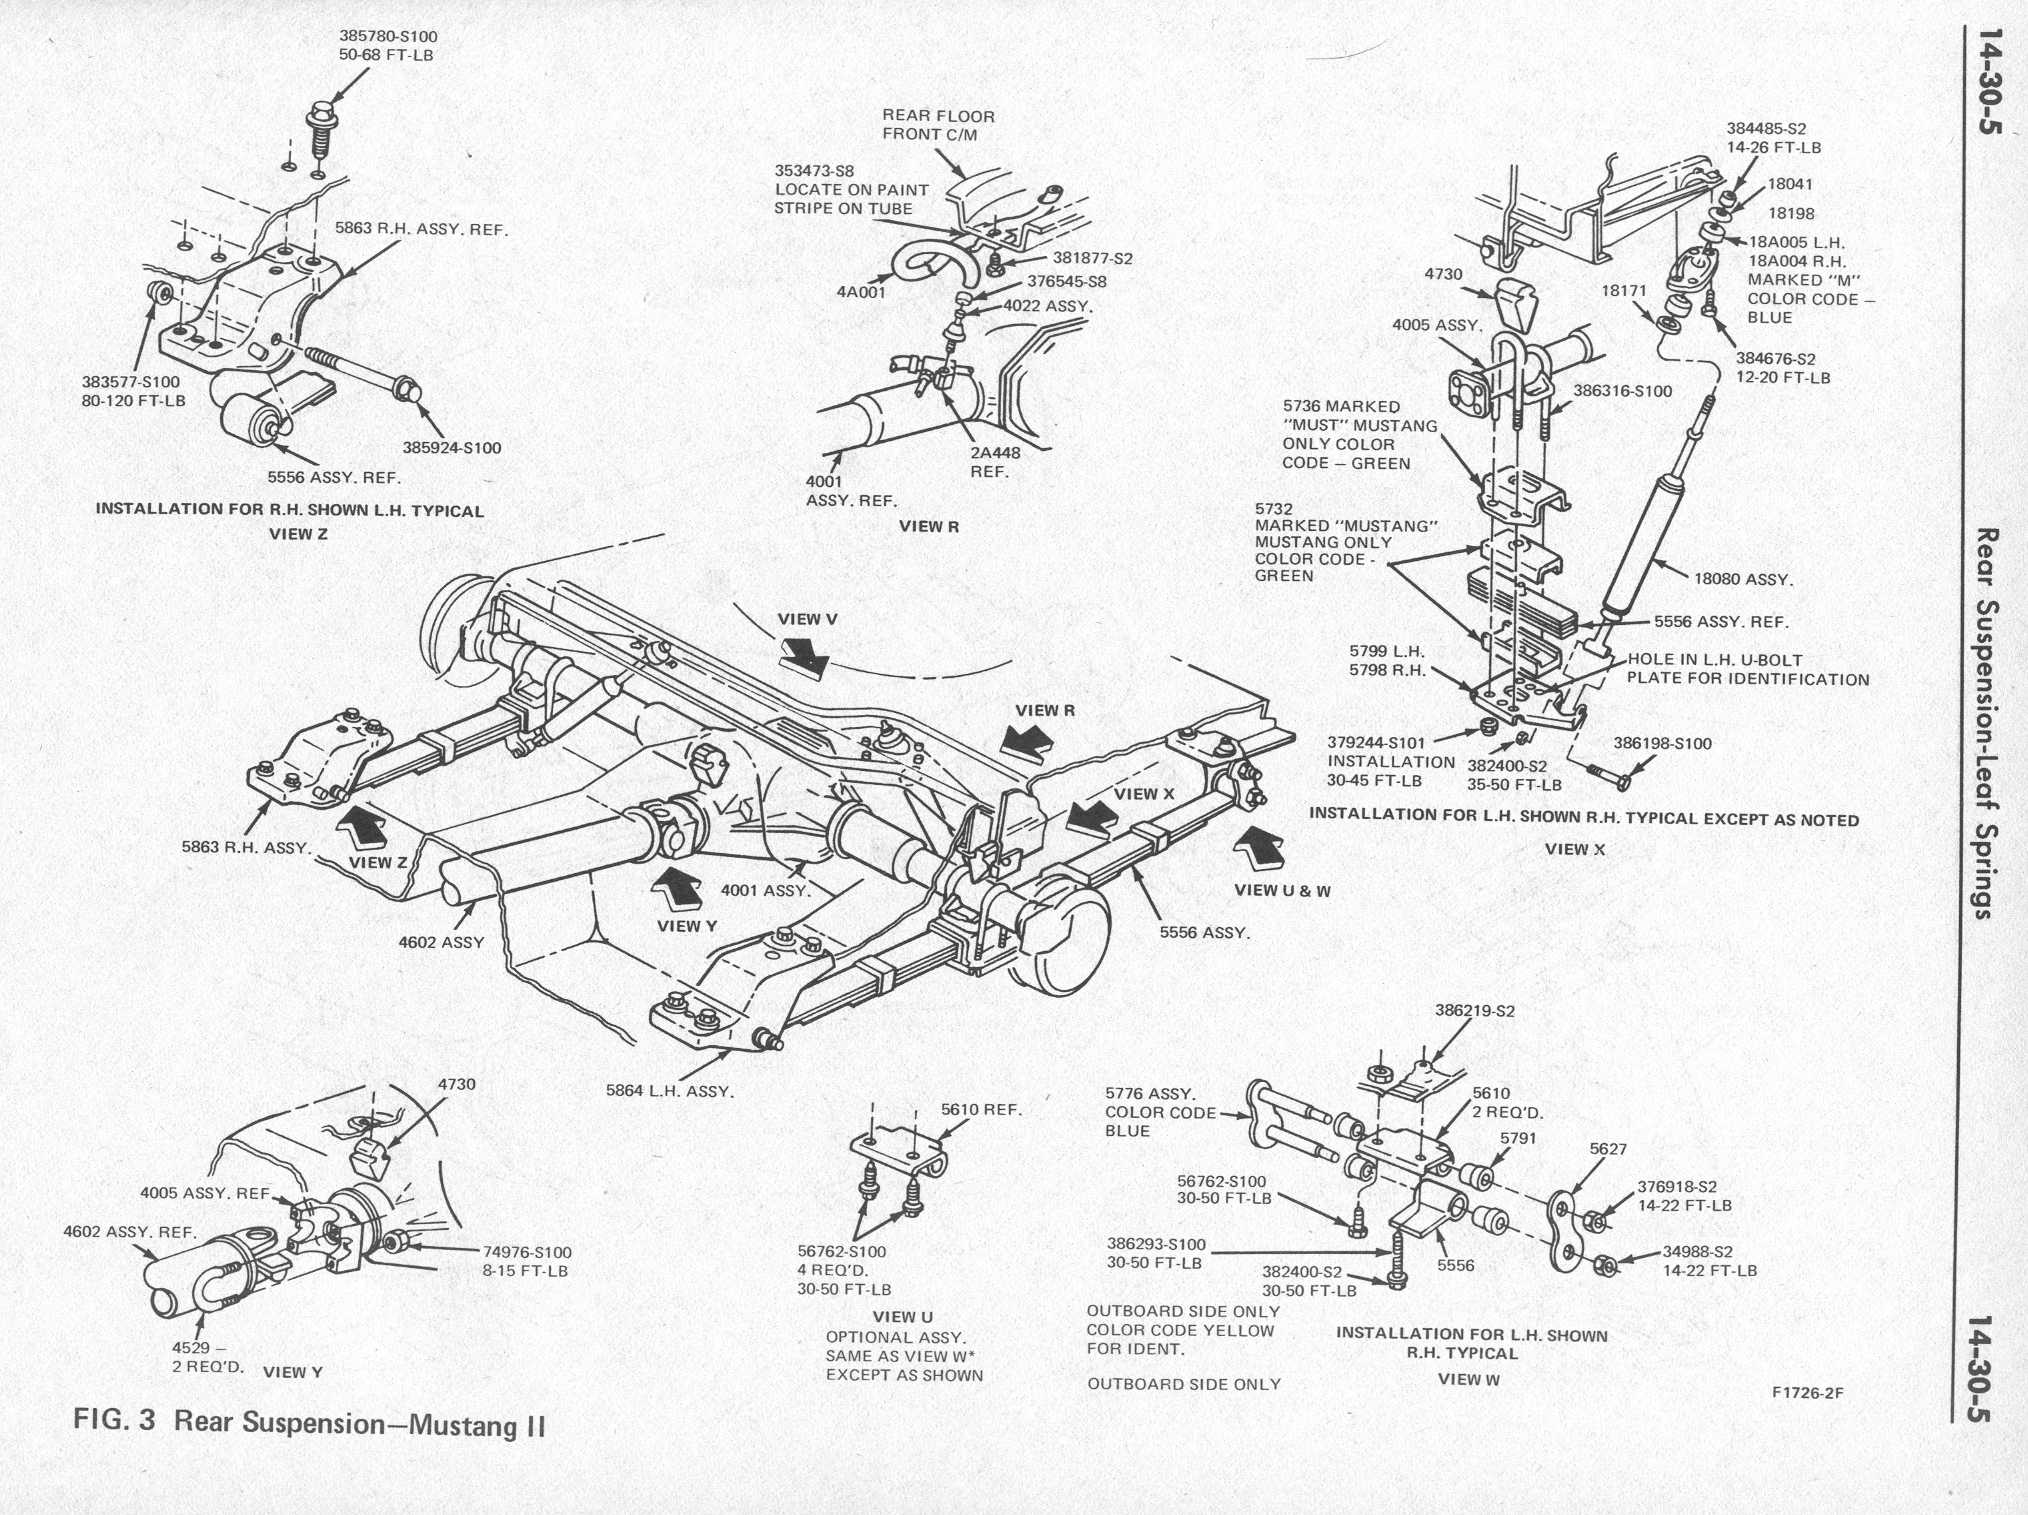 1964 Mustang Wiring Diagrams Average Joe Restoration also Wiring besides C4 Corvette Wiring Diagram furthermore Wiring Diagram likewise Schematics h. on 69 mustang fuse relay box